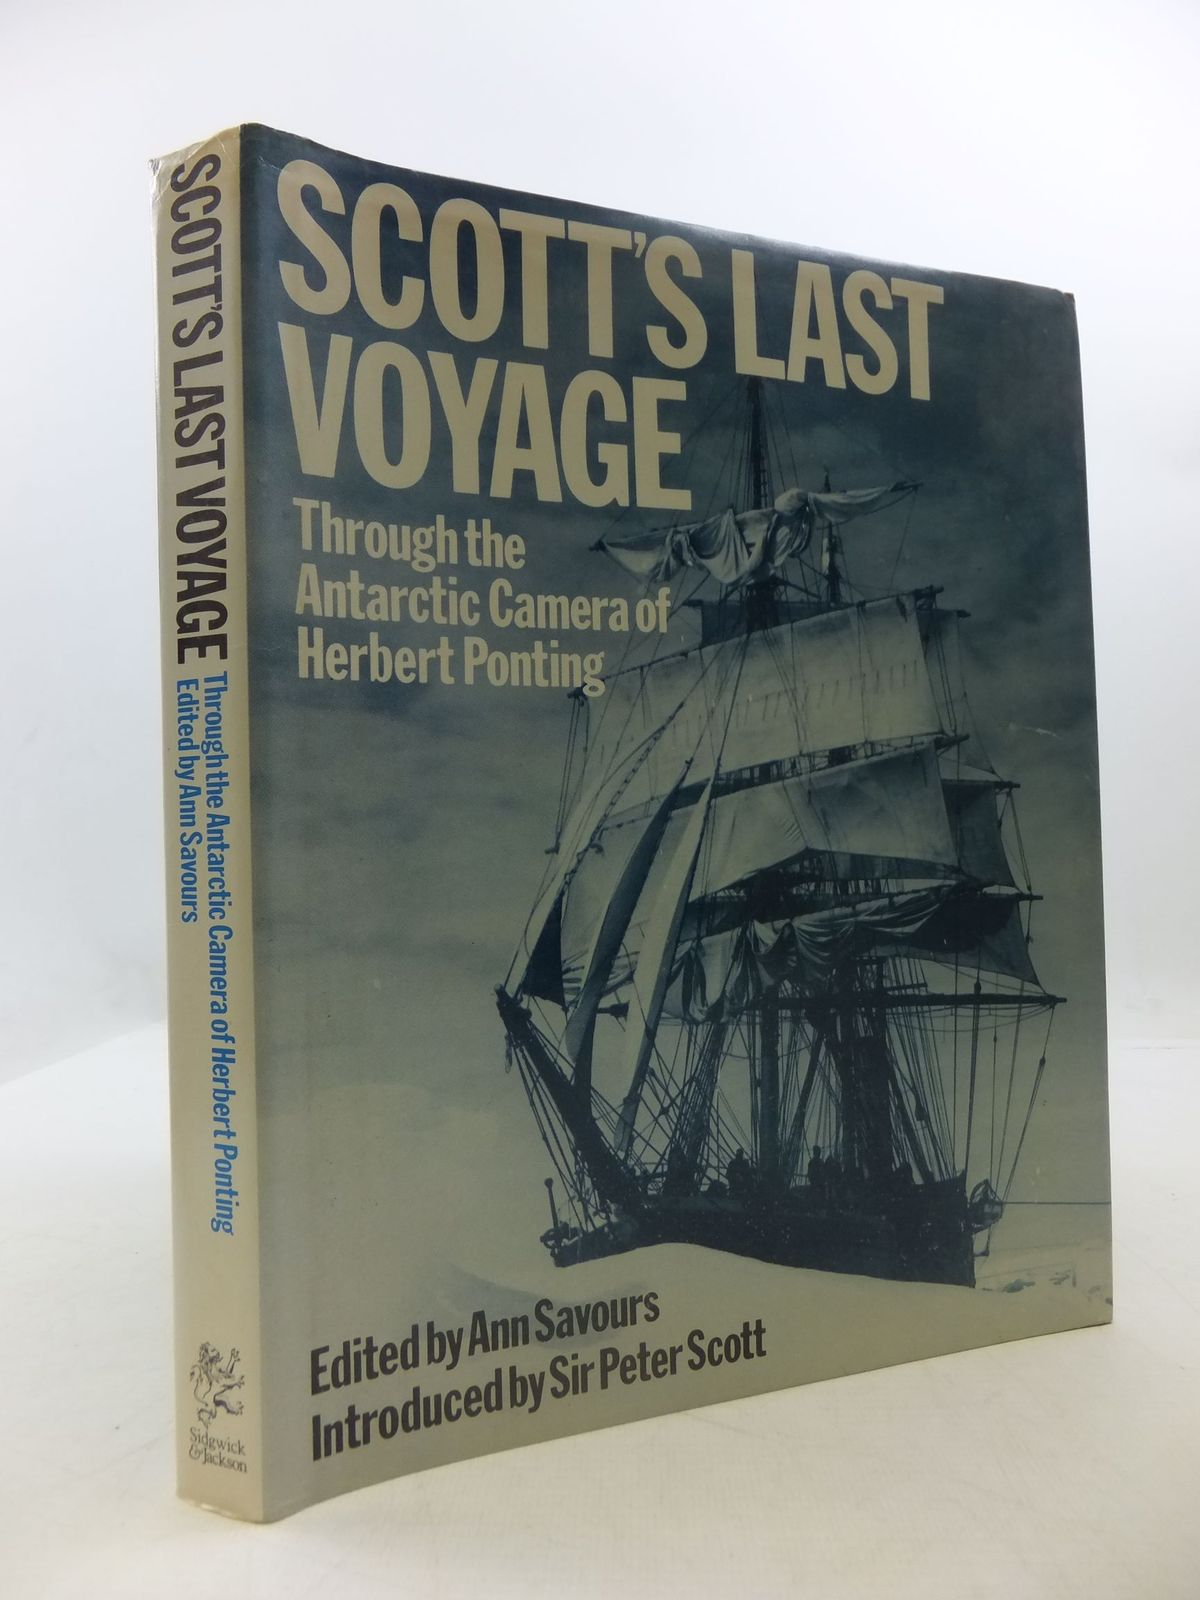 Photo of SCOTT'S LAST VOYAGE THROUGH THE ANTARCTIC CAMERA OF HERBERT PONTING